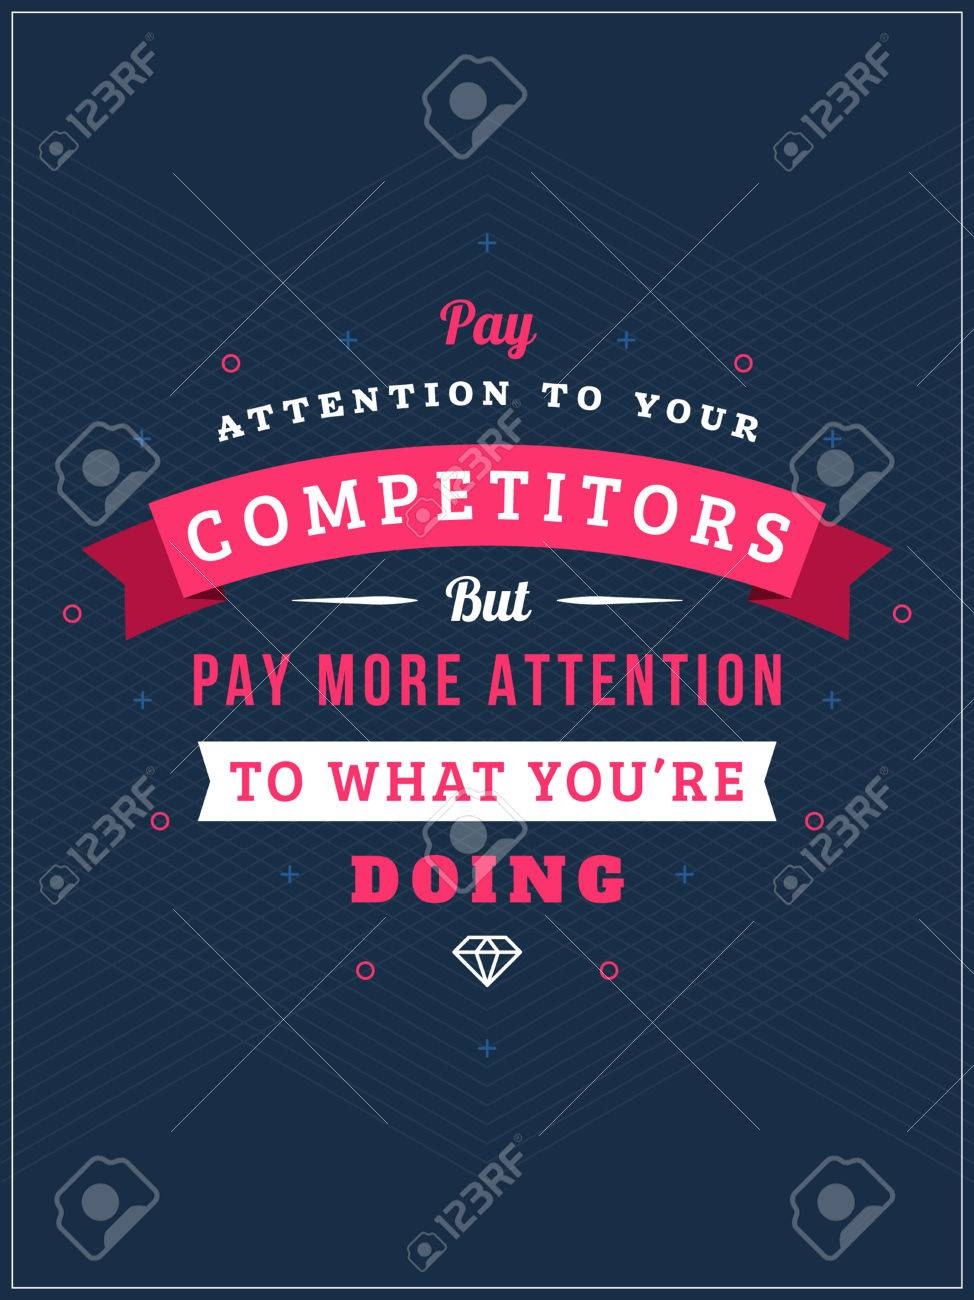 Graphic design poster quotes - Inspirational And Motivational Quotes Typographic Poster Design In Flat Style Vector Template For Print Design